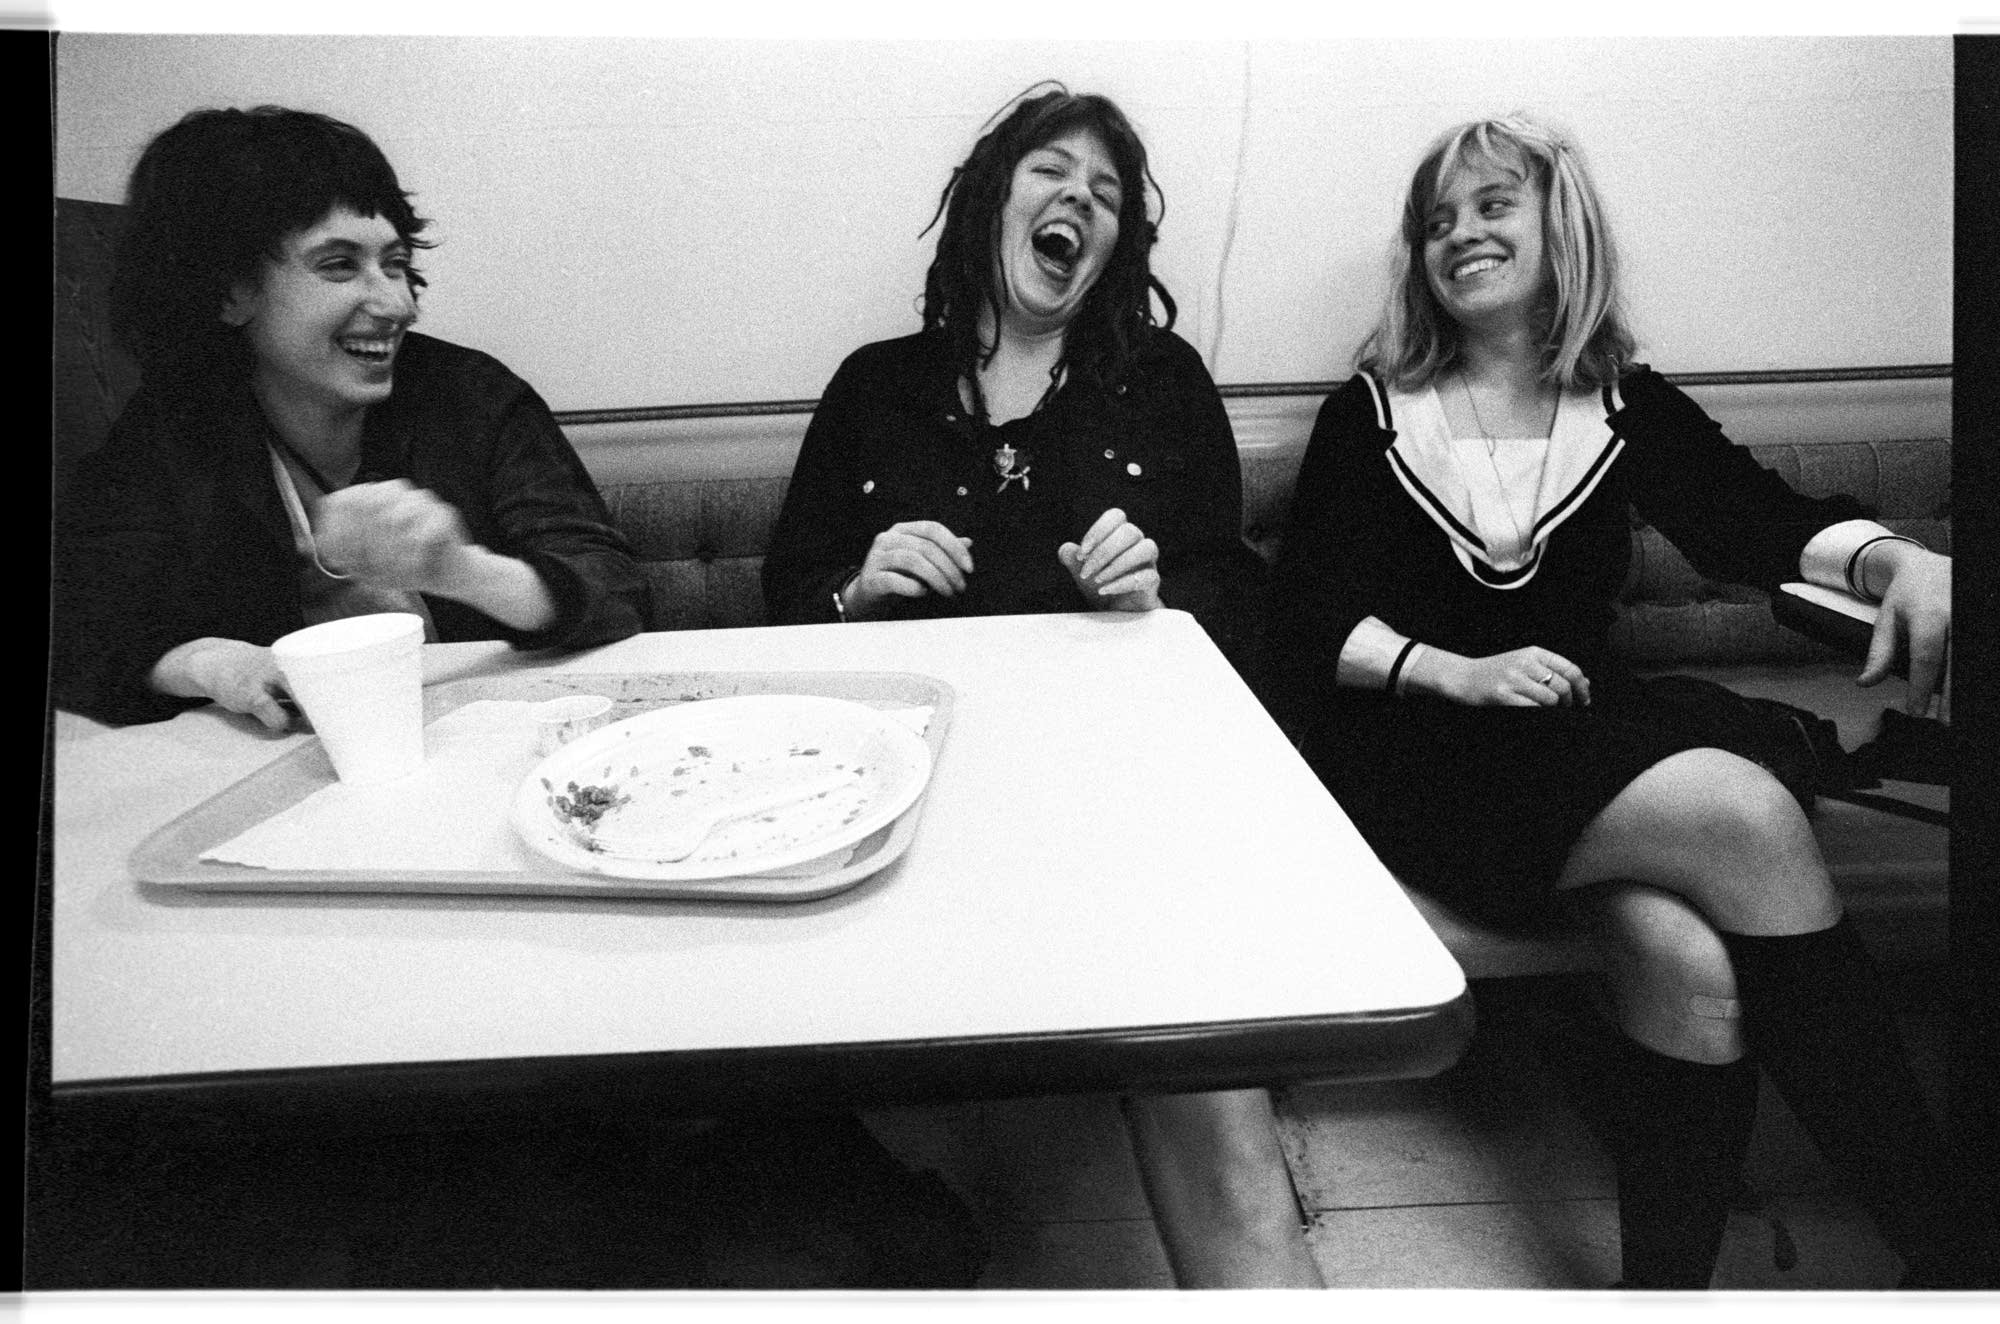 : On the road with Babes in Toyland,1990.